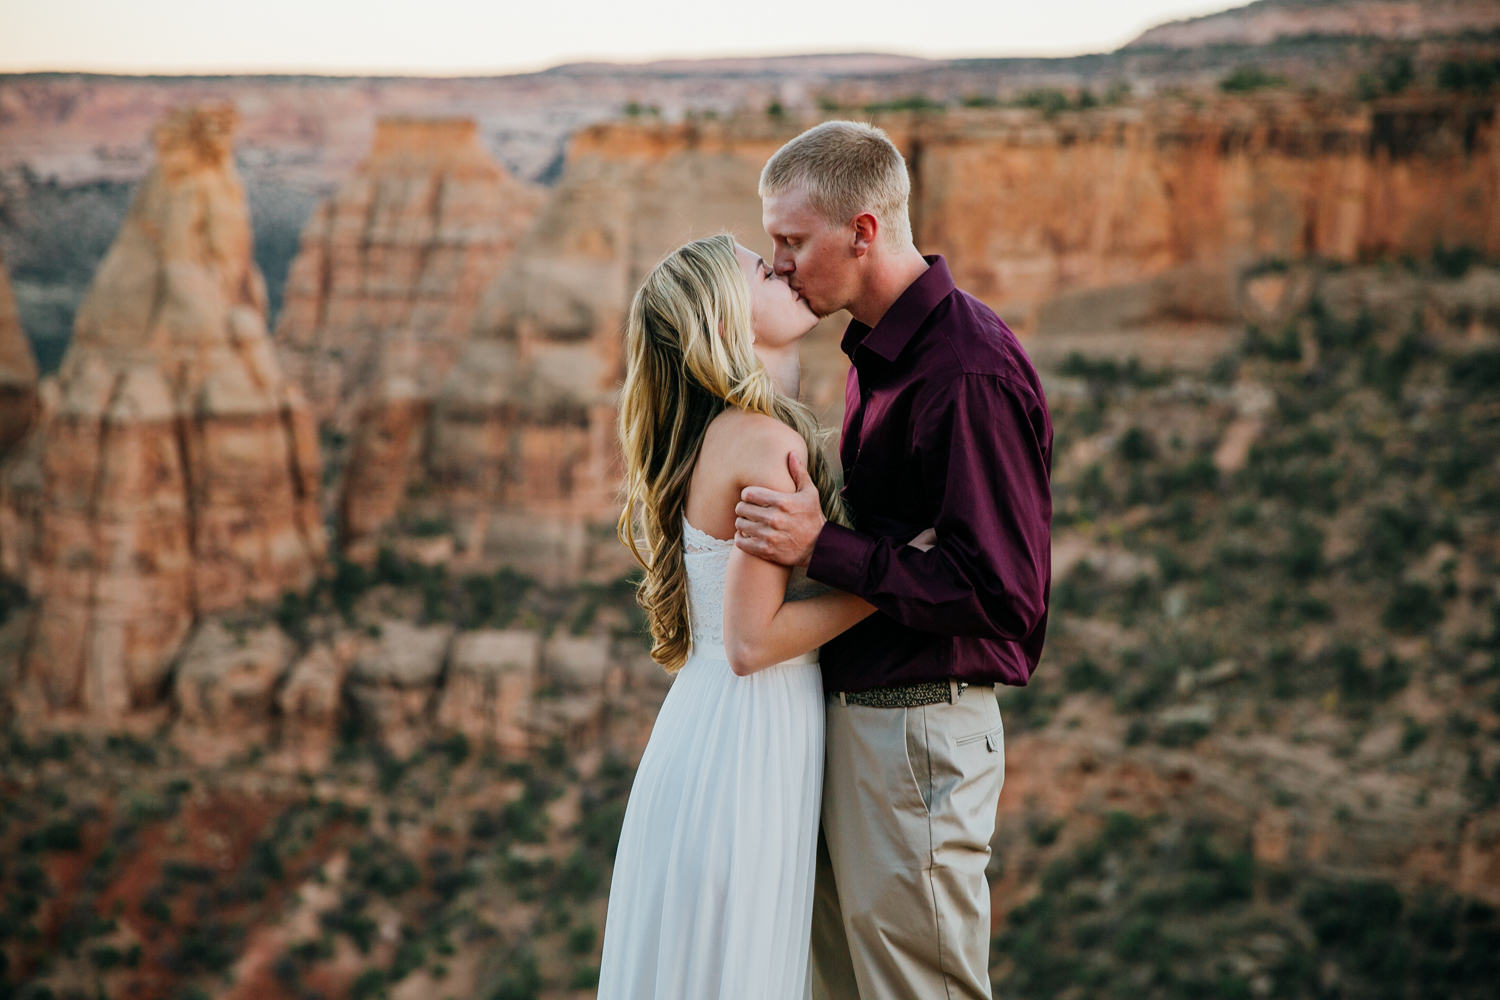 grand-junction-colorado-monument-wedding-photographer-engagements-35.jpg